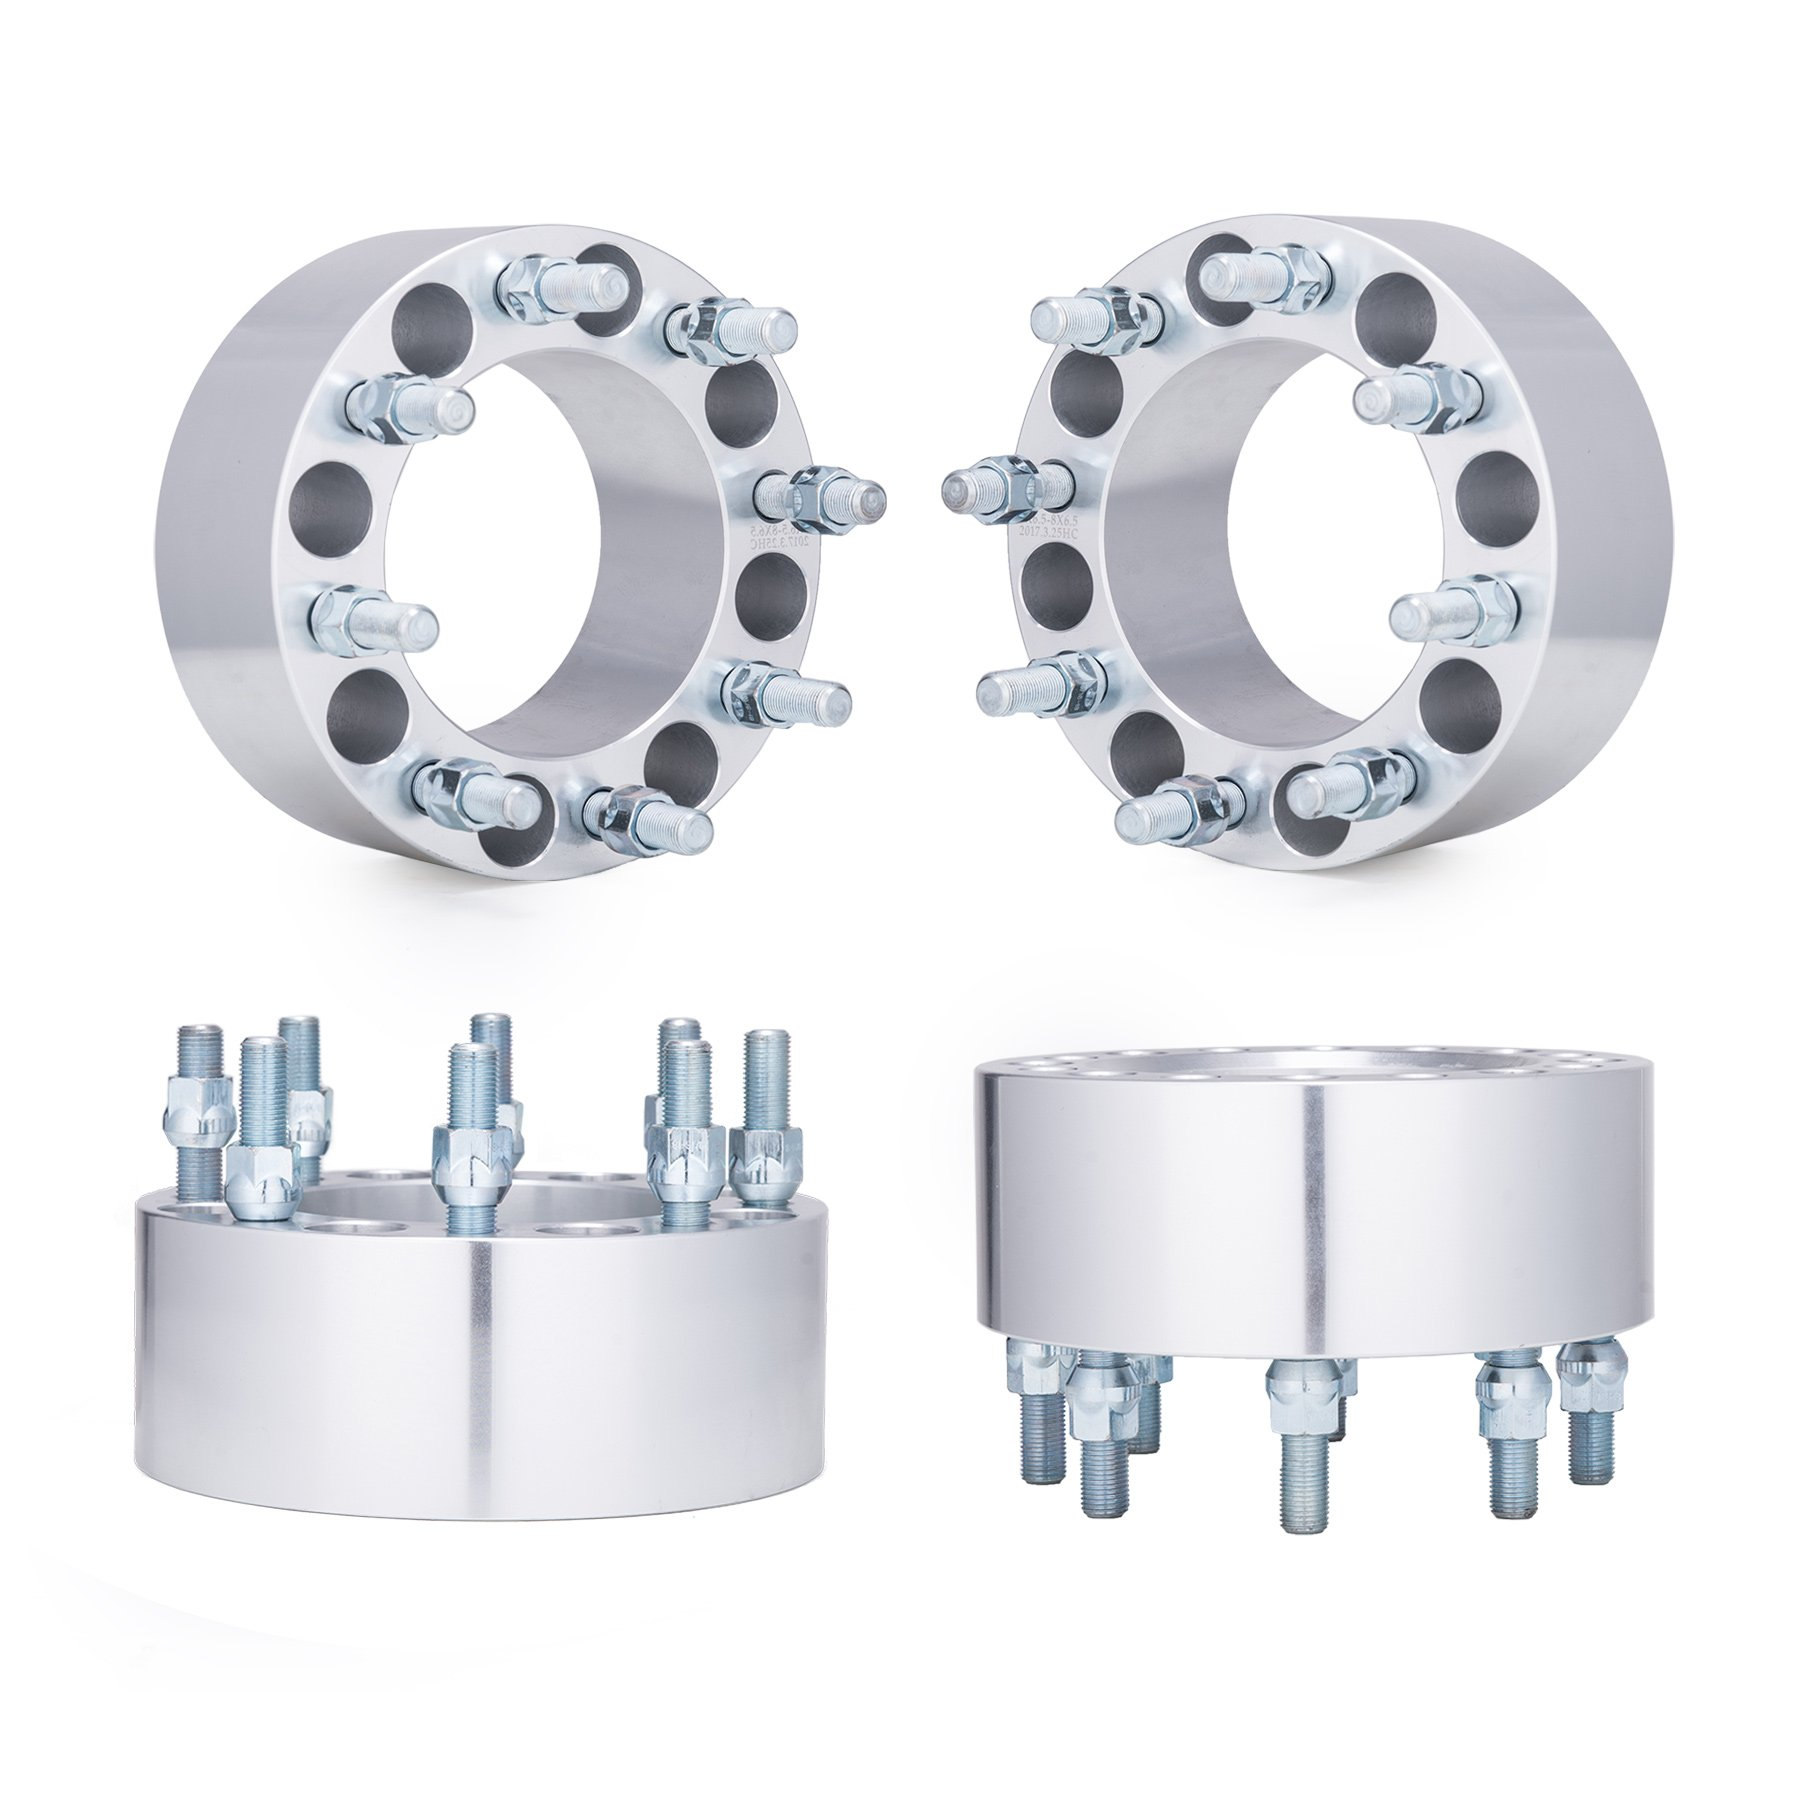 Orion Motor Tech 4pcs 3'' Wheel Spacers 8x6.5 with 9/16-18 Studs for 94-11 Dodge Ram 2500 3500, 88-98 Ford F250 F350, Ford Econoline 250 350